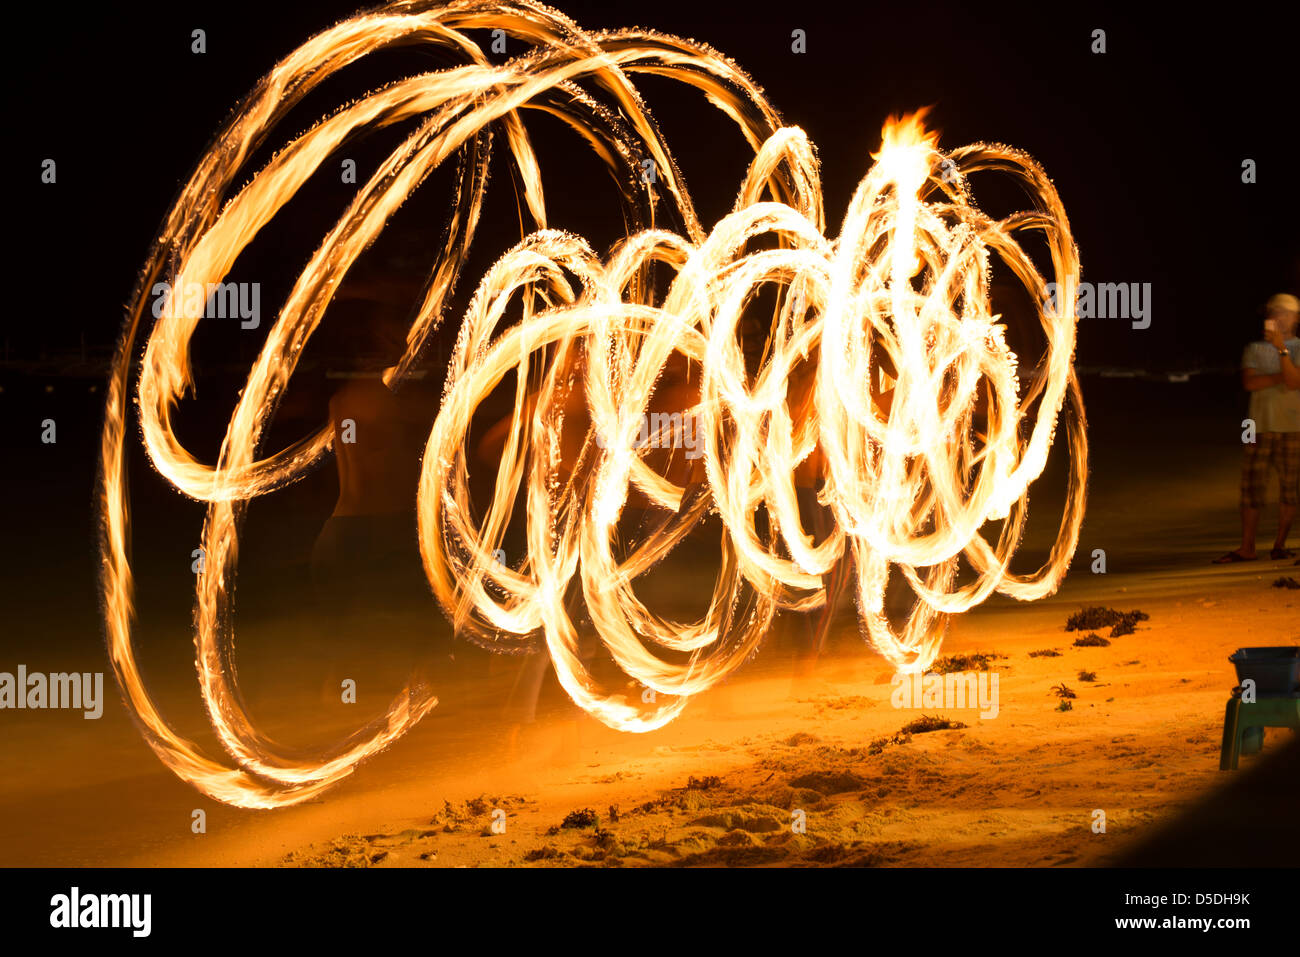 Fire artist showing off his art on Alona Beach - Stock Image